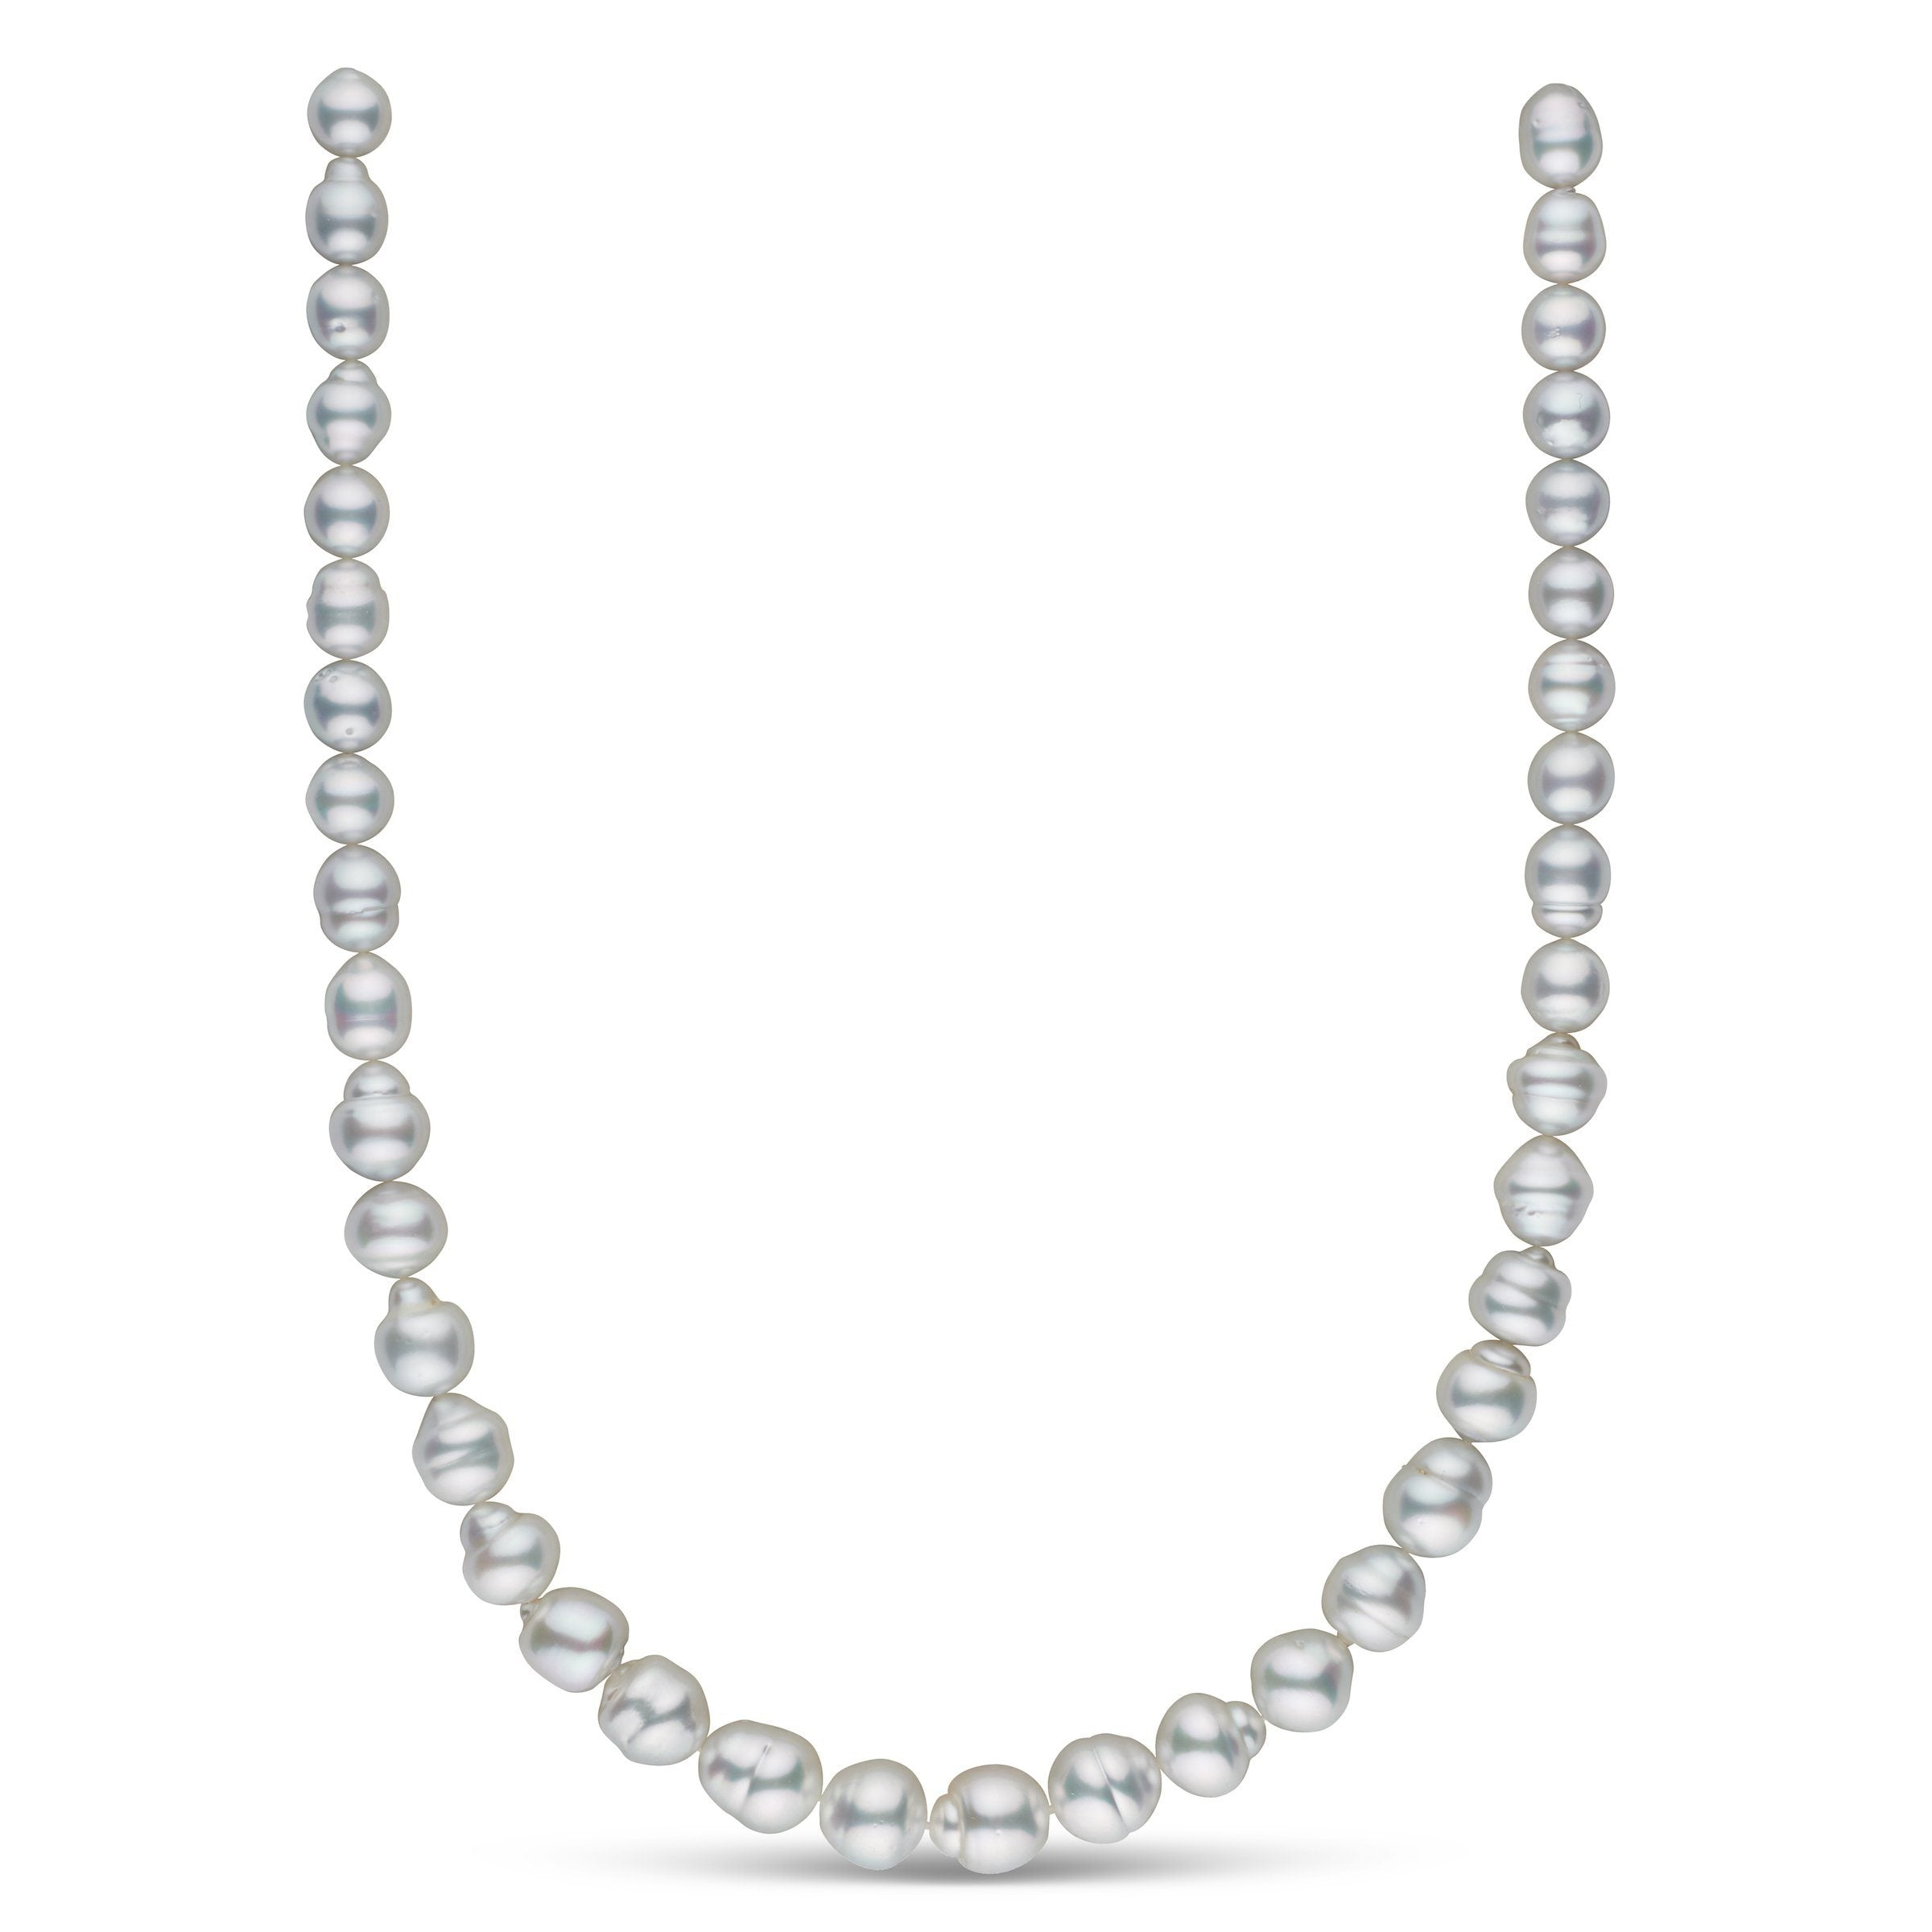 8.4-11.1 mm AA+/AAA White South Sea Baroque Necklace